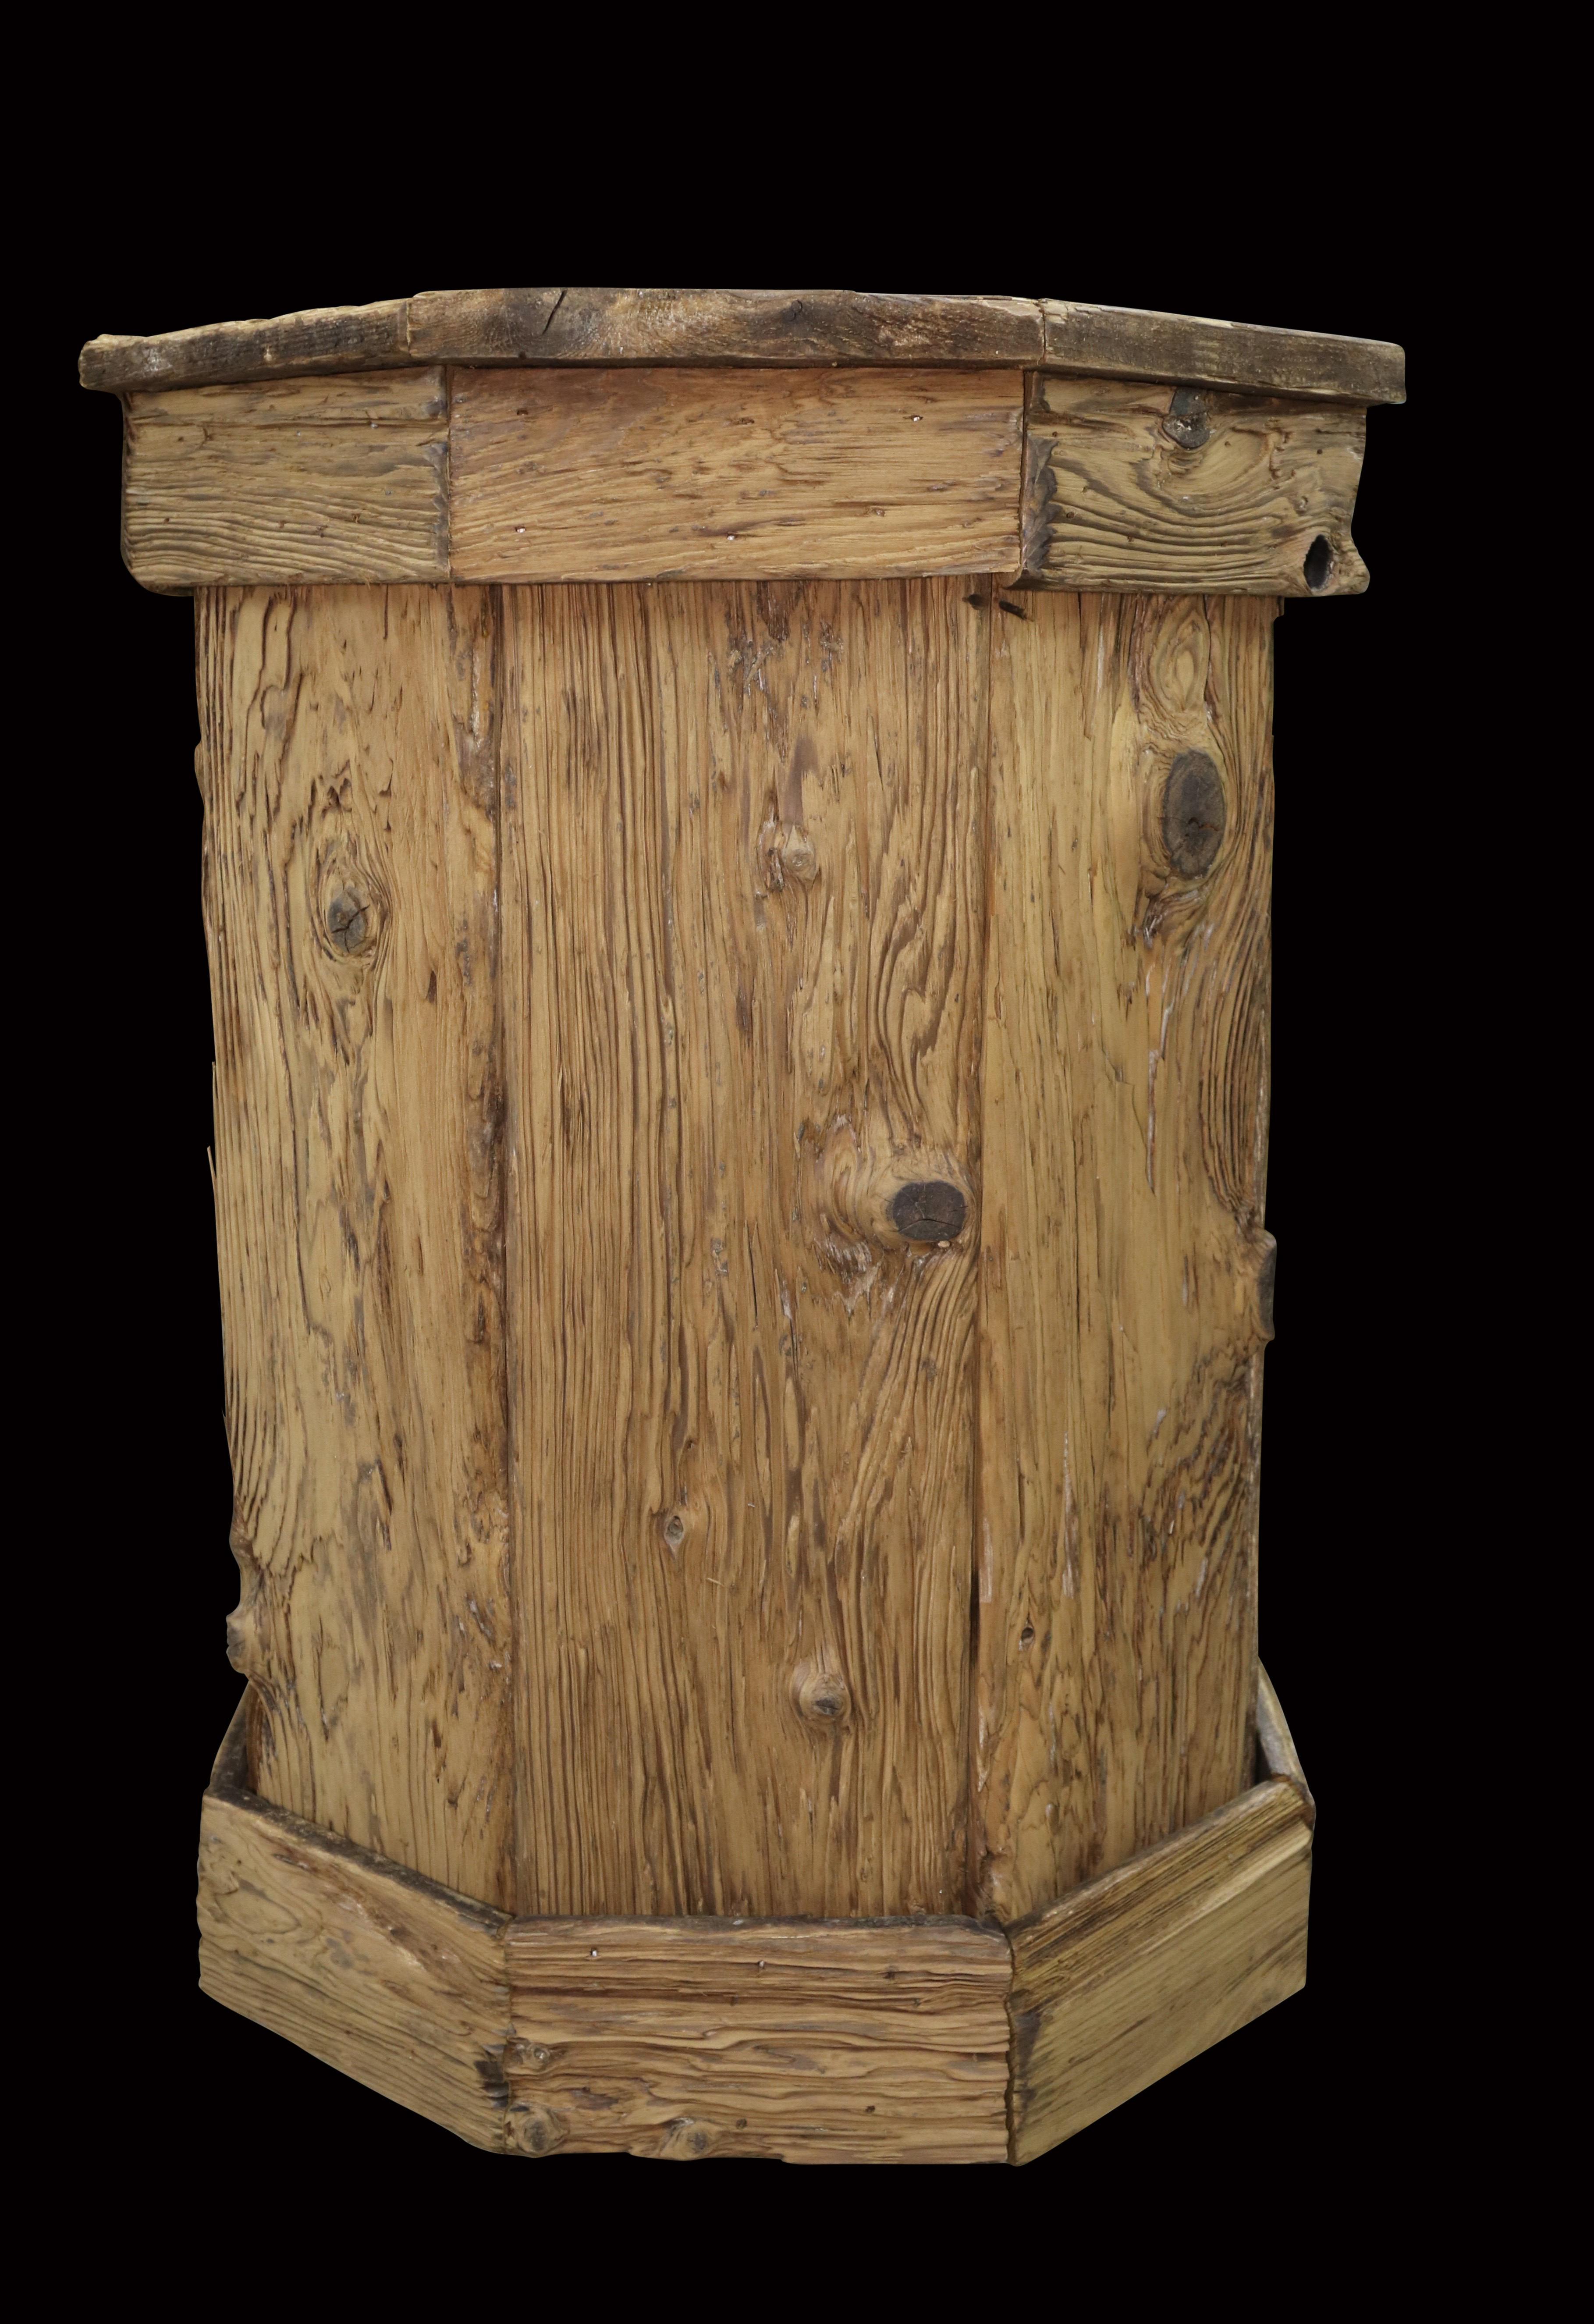 Reclaimed wood pedestals non hunting items for sale and for Reclaimed wood new york